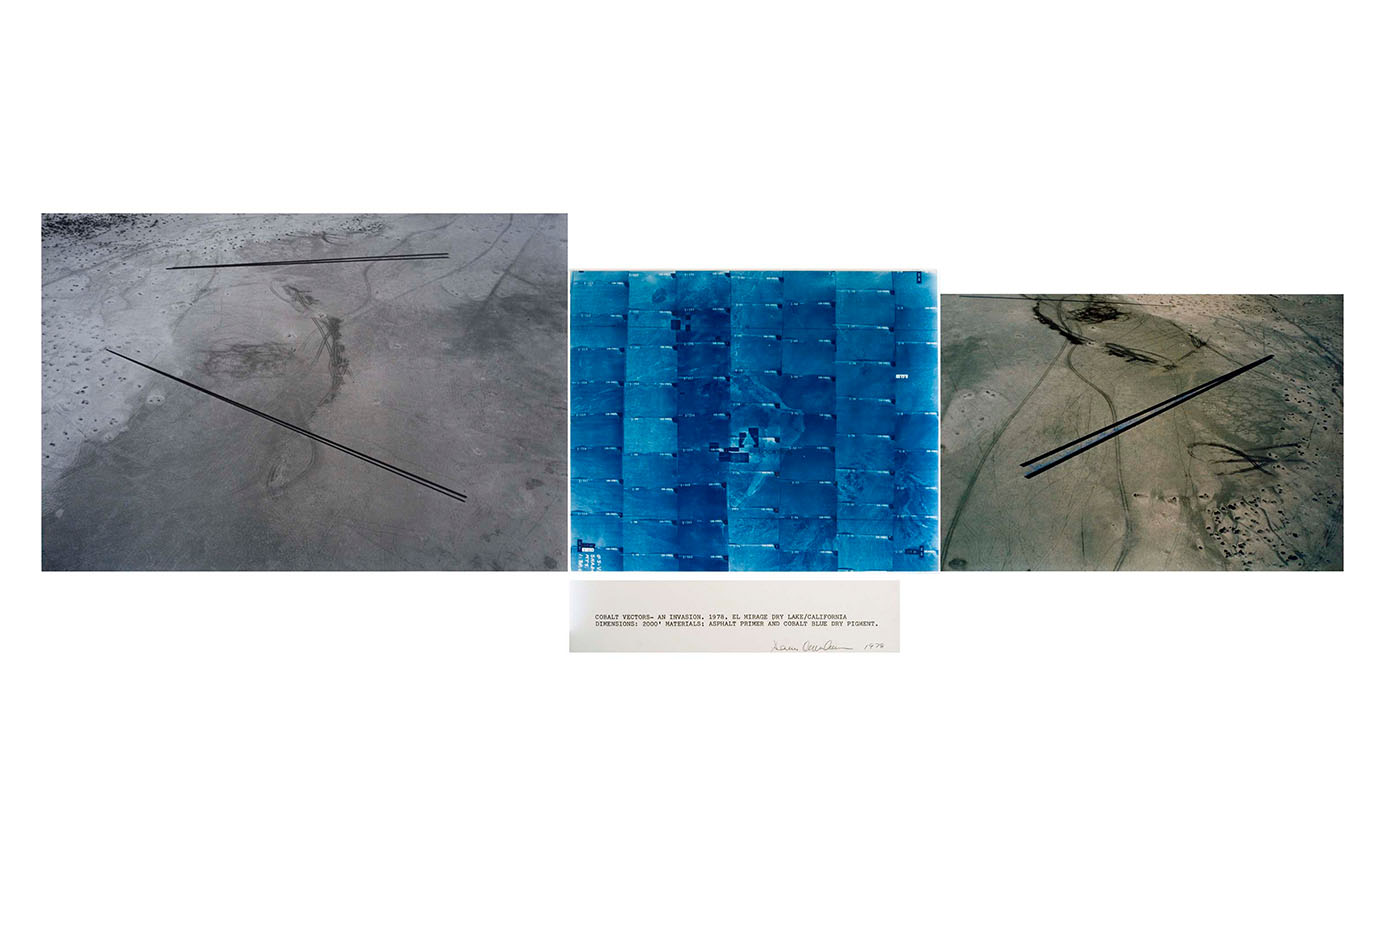 Cobalt Vectors-An Invasion , 1978 Color photography and text |4 panels: 50 x 137 inches | HG2354